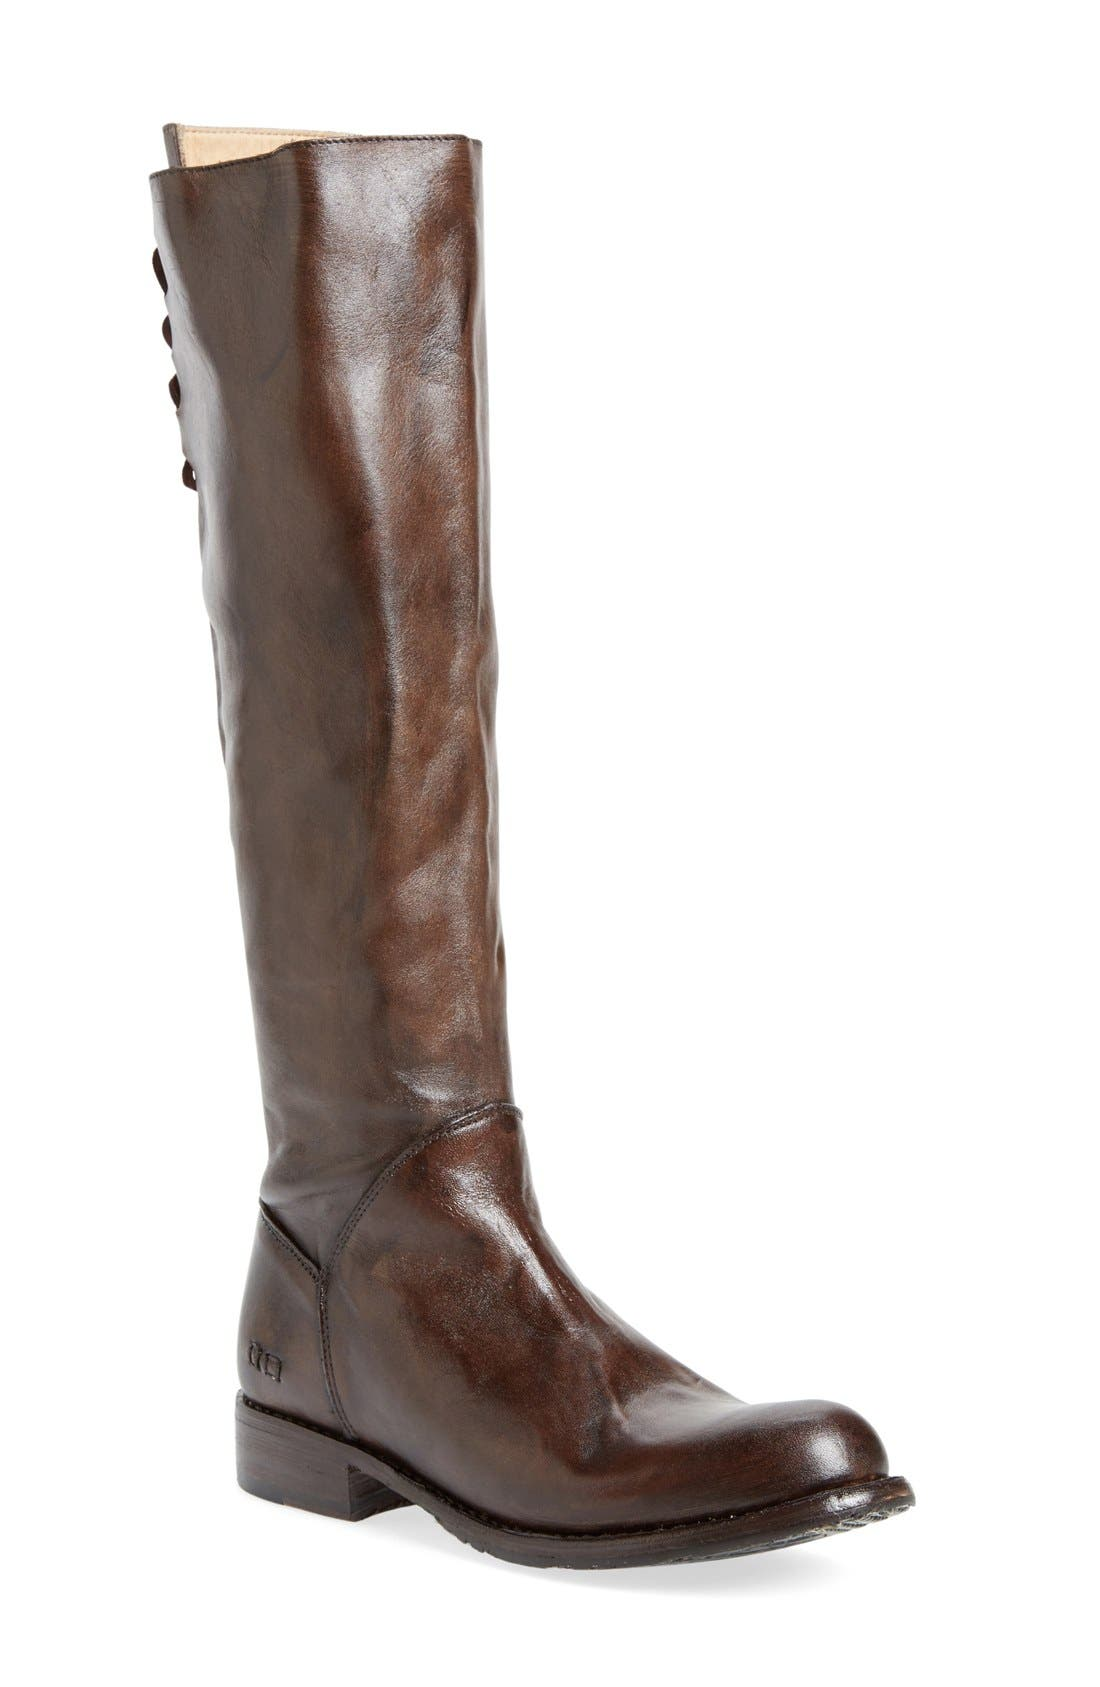 Main Image - Bed Stu 'Manchester II' Boot